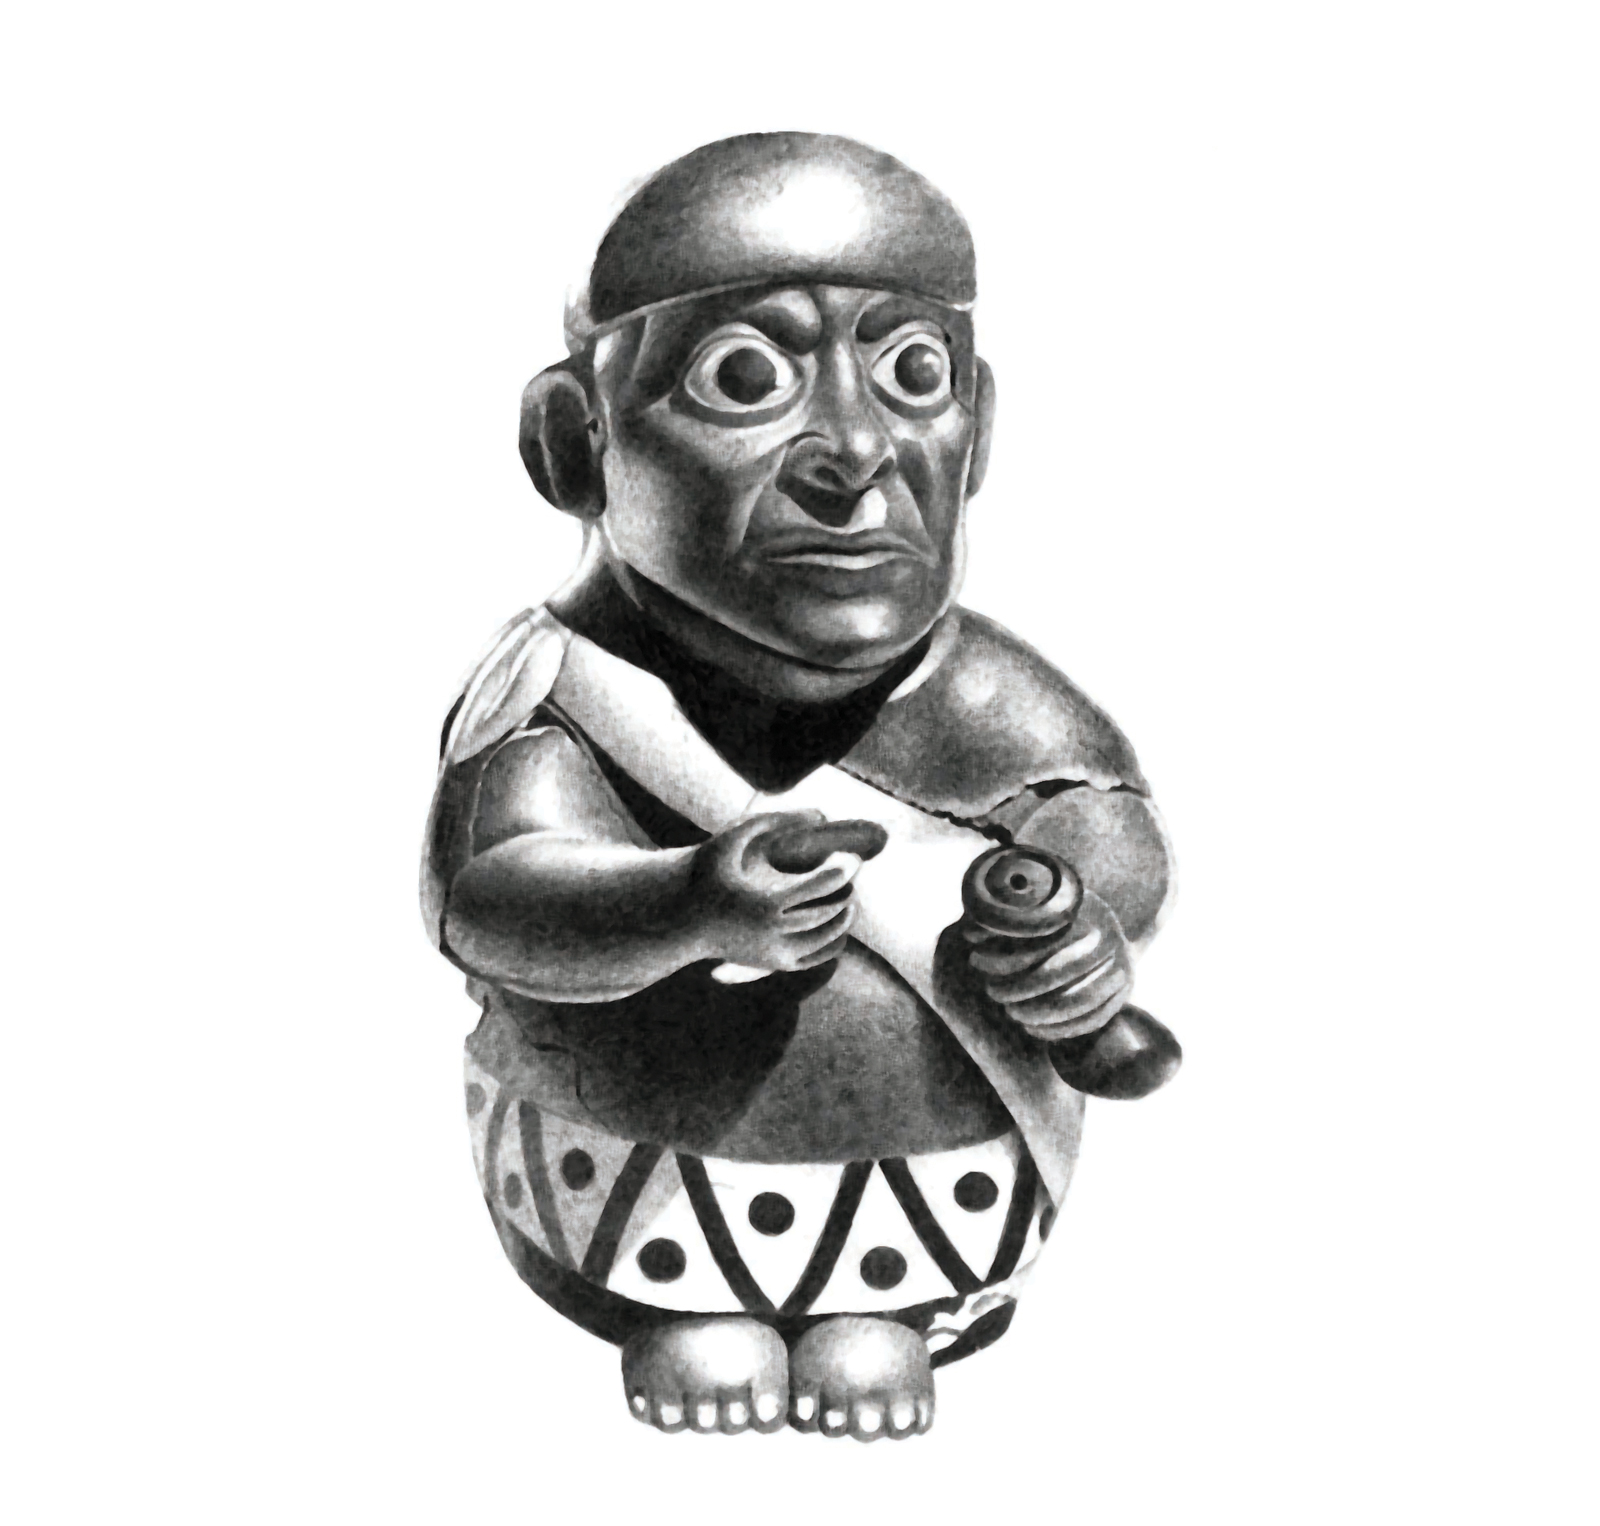 Coca_chewer_figurine